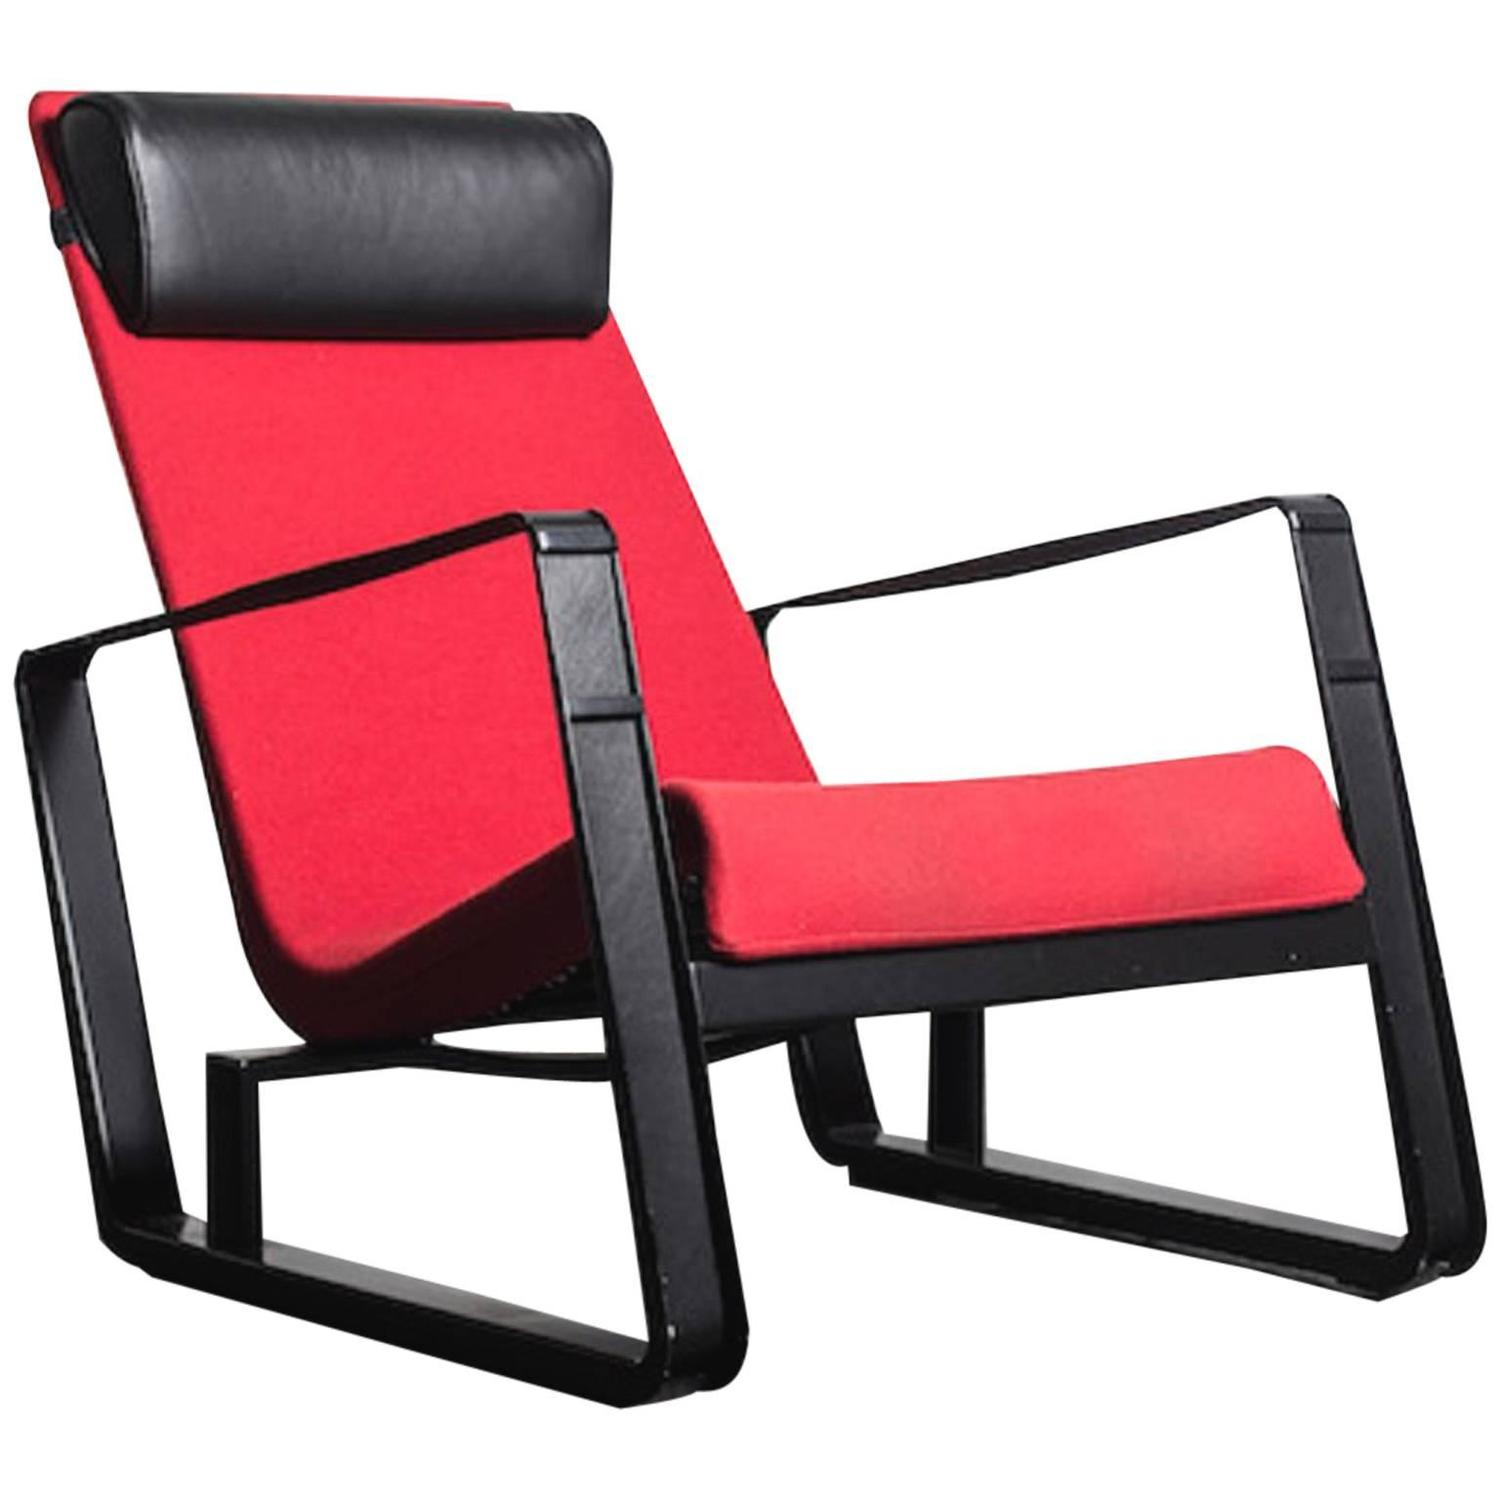 Jean Prouvé Lounge Chairs 4 For Sale at 1stdibs